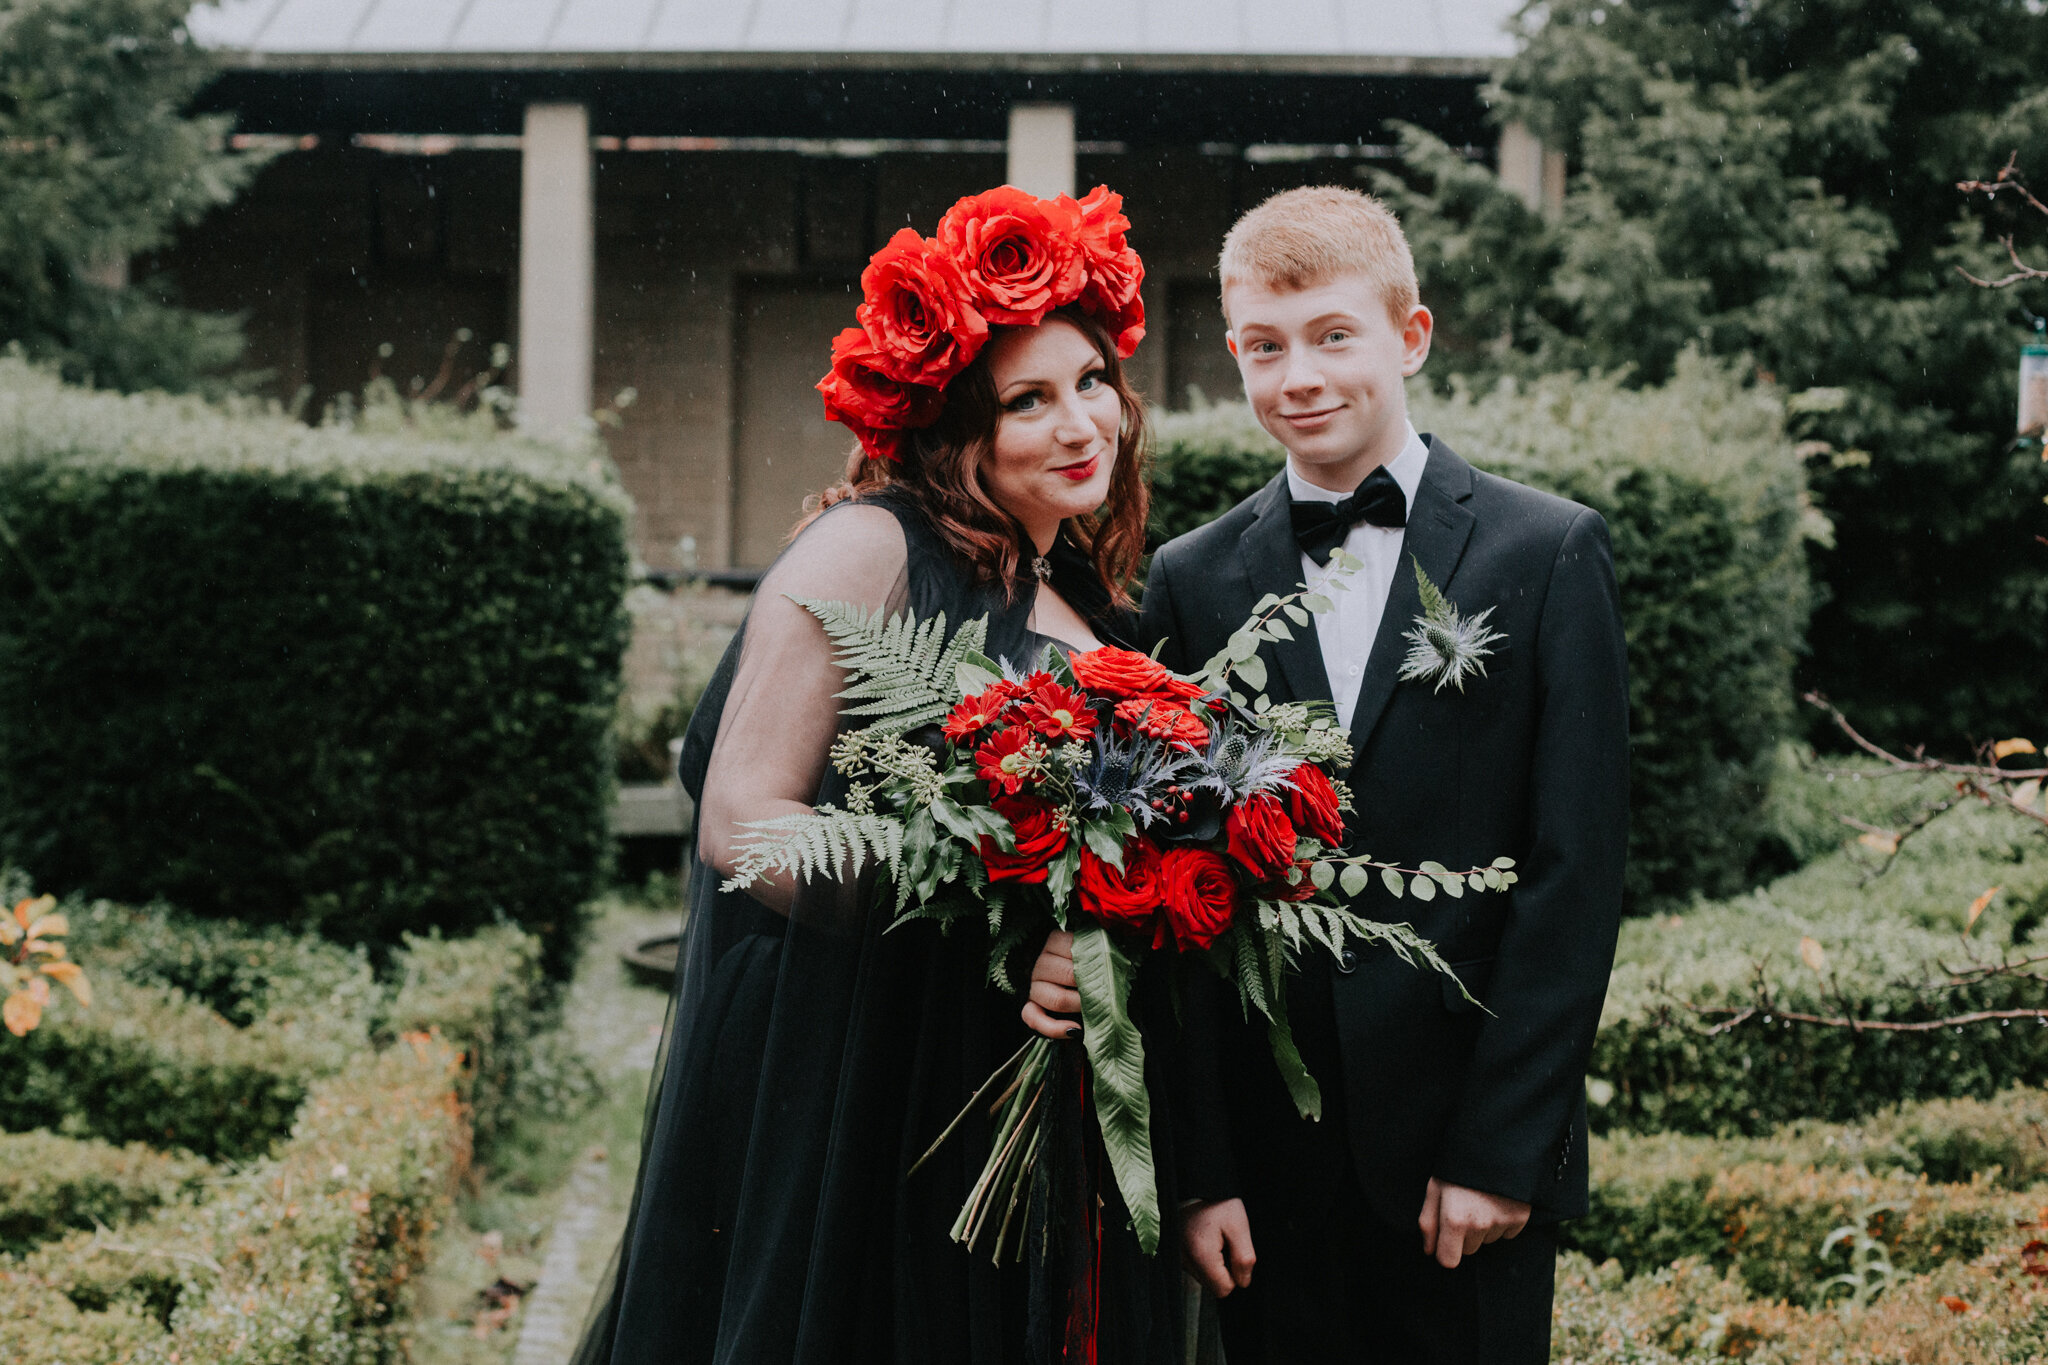 Mother and son wedding portrait